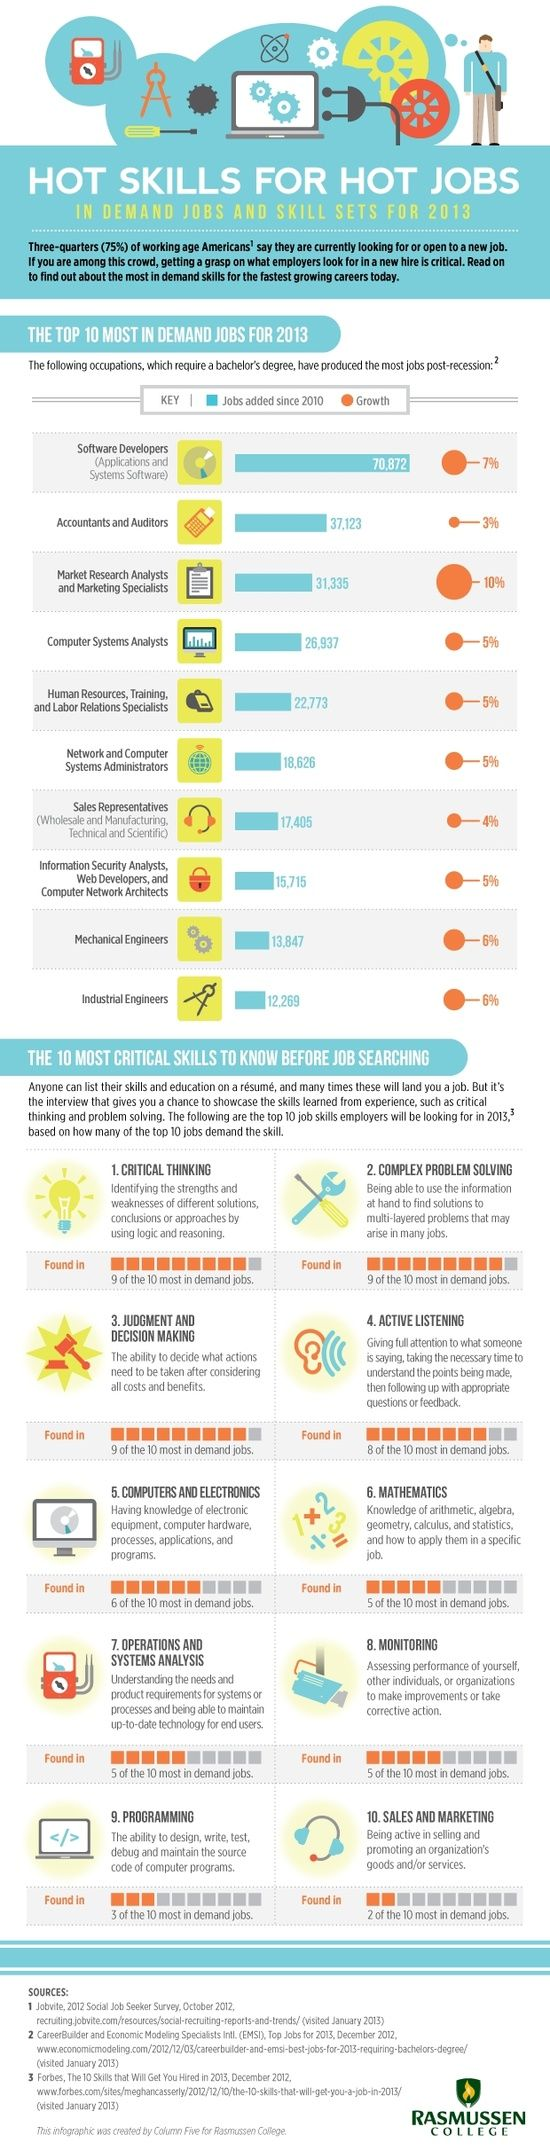 best images about skills resume tips jobs in hot skills for hot jobs in demand jobs and skill sets for 2013